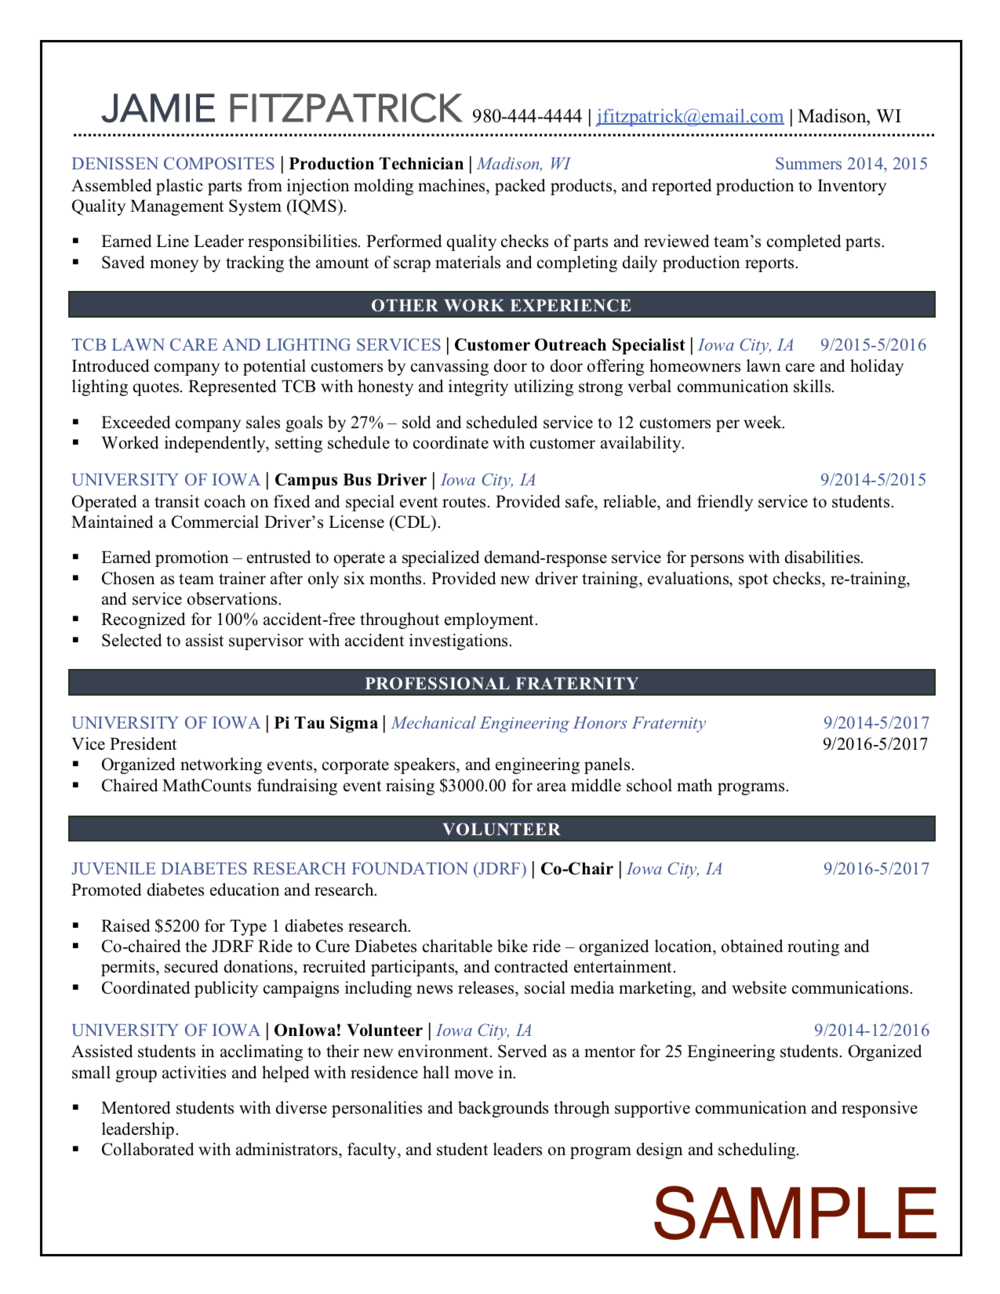 New College Graduate Resume – page two